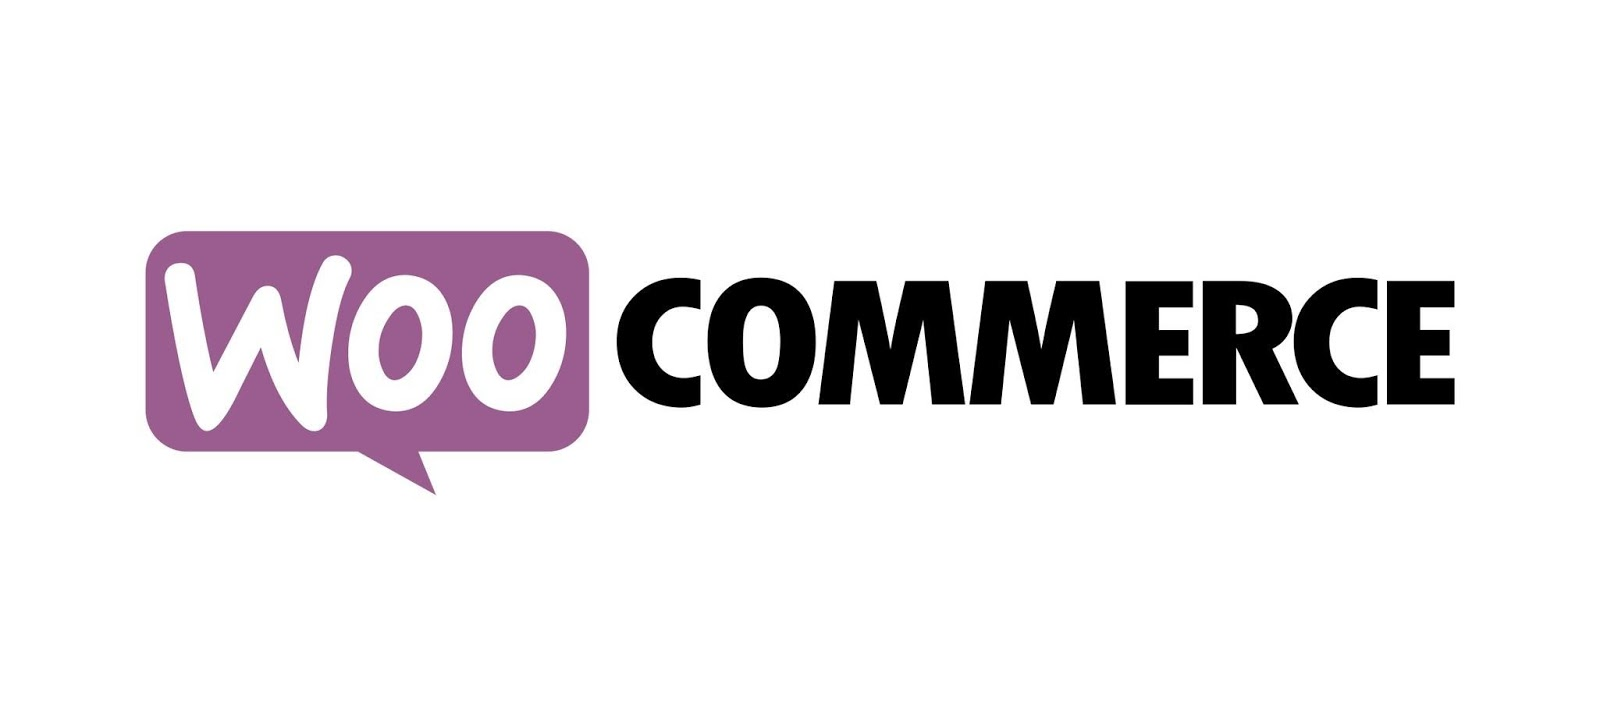 Image result for woocommerce logo